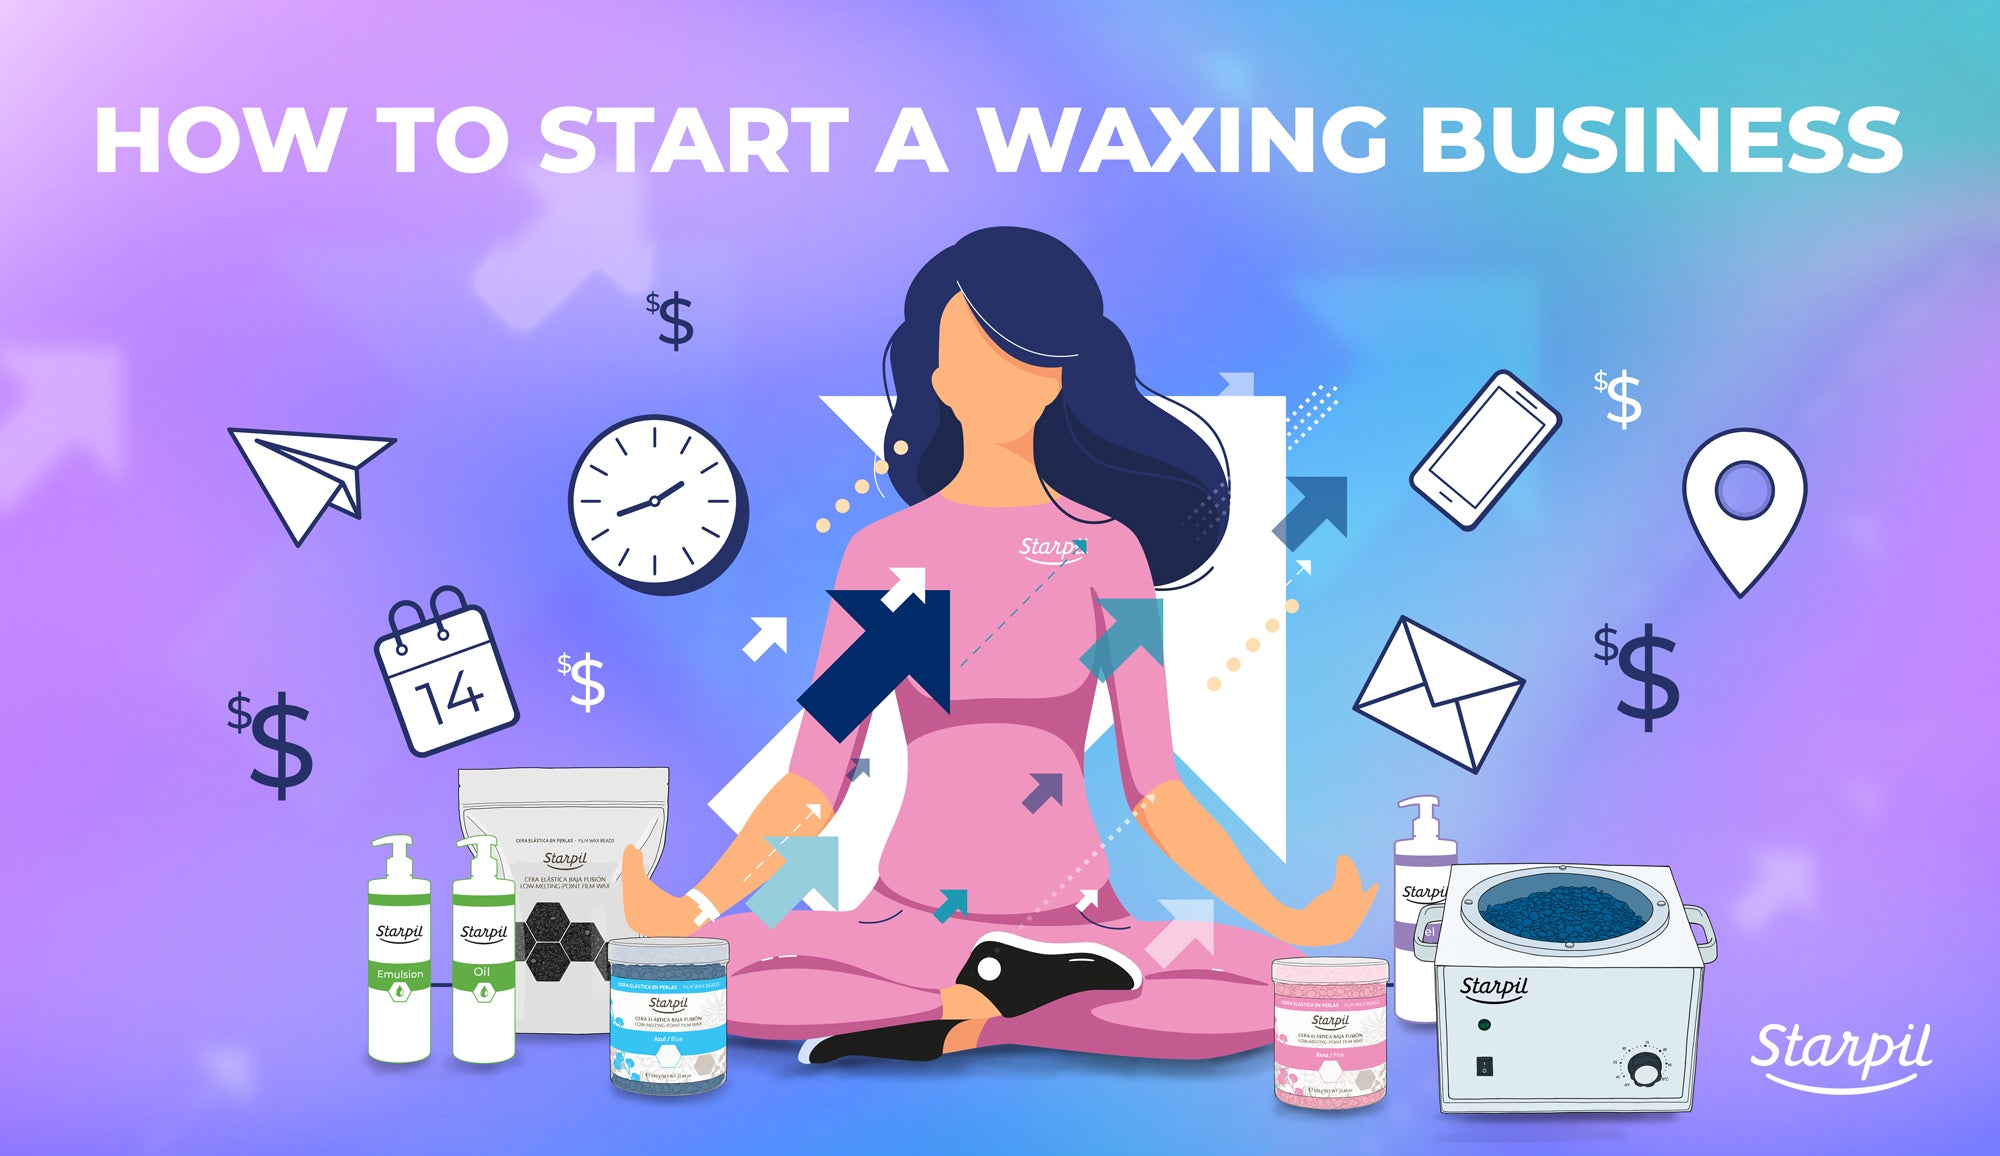 How to Start a Waxing Business